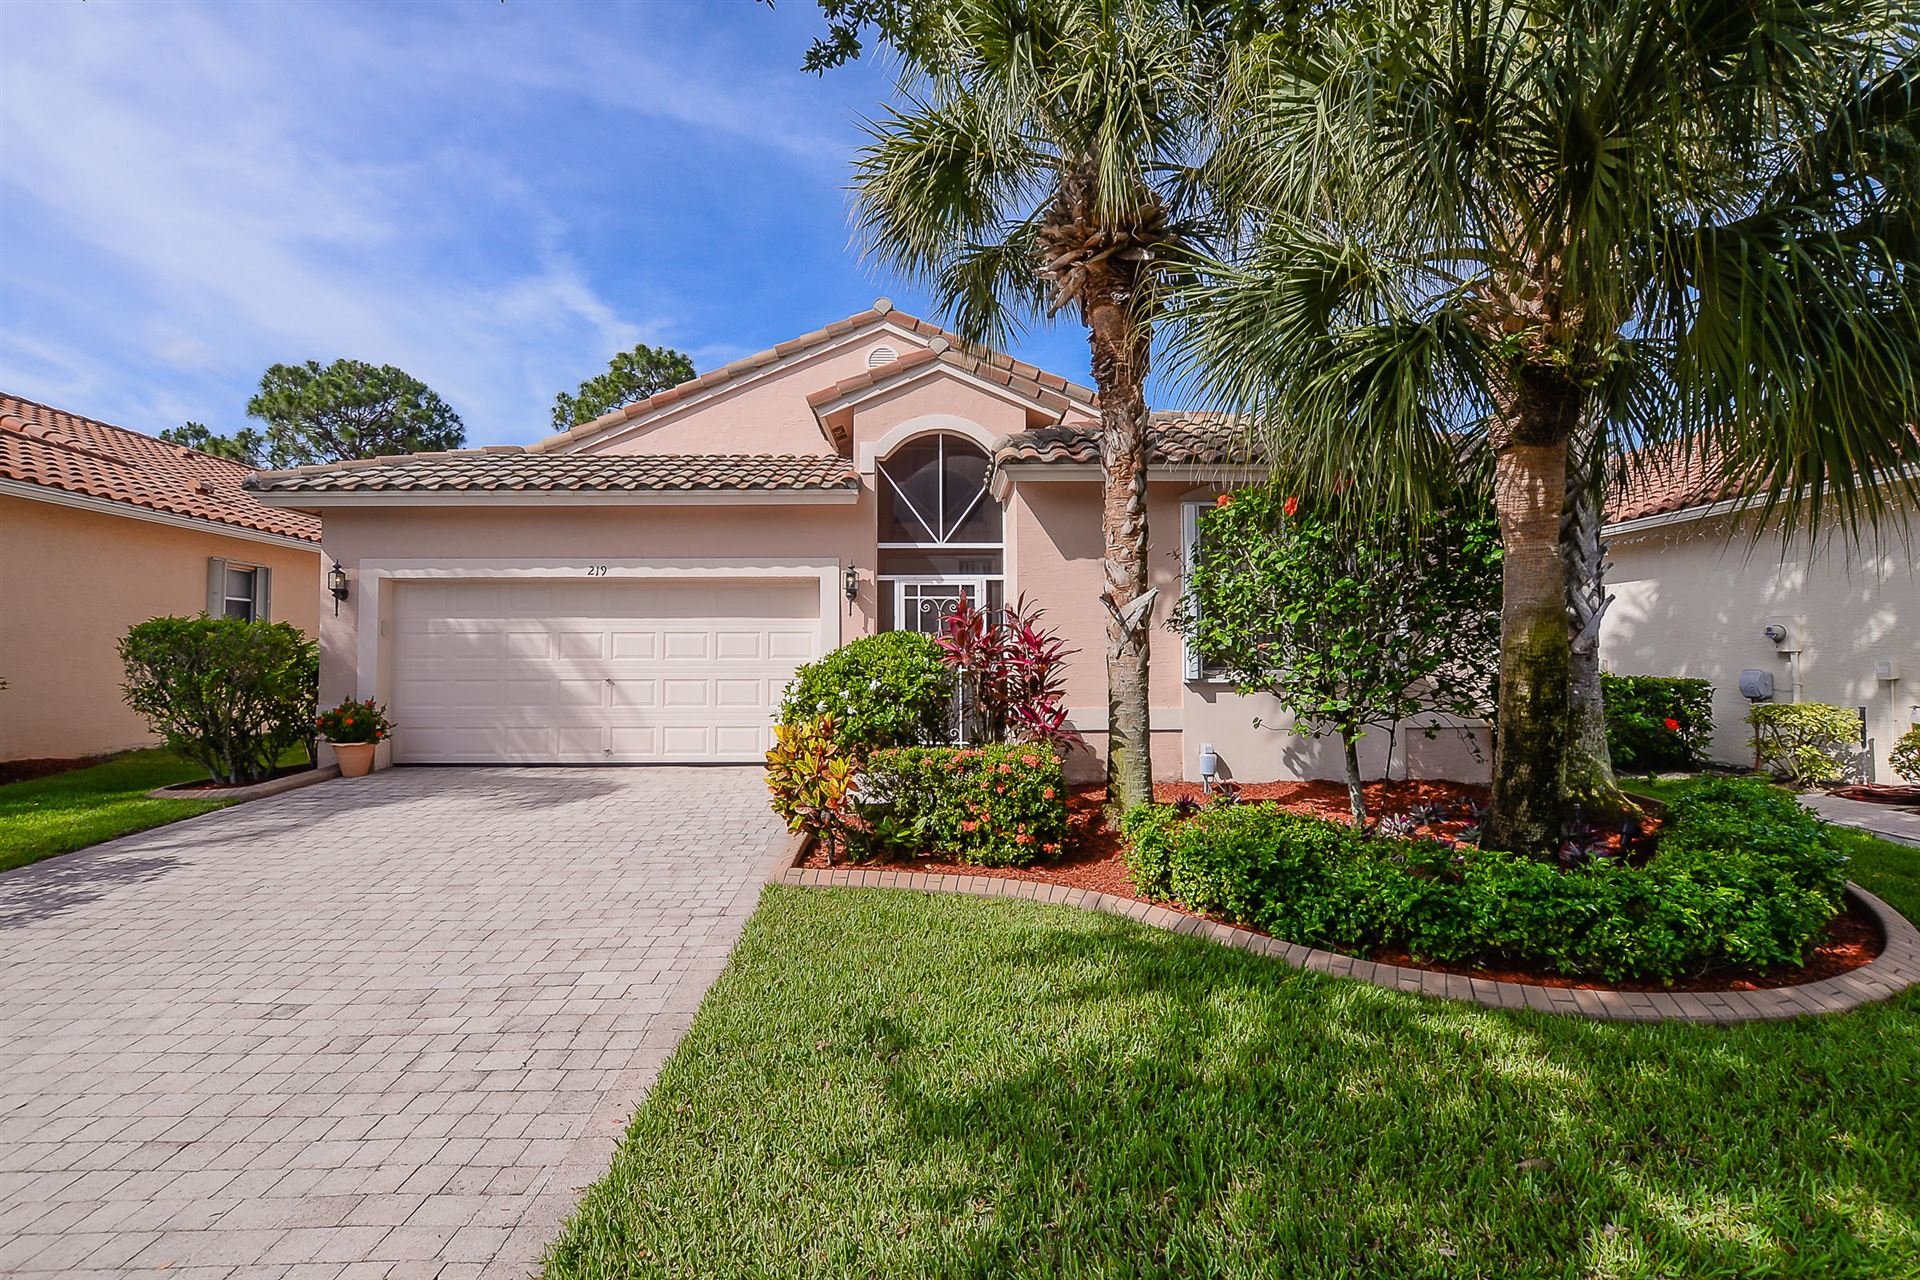 Photo of 219 NW Chorale Way, Port Saint Lucie, FL 34986 (MLS # RX-10618657)